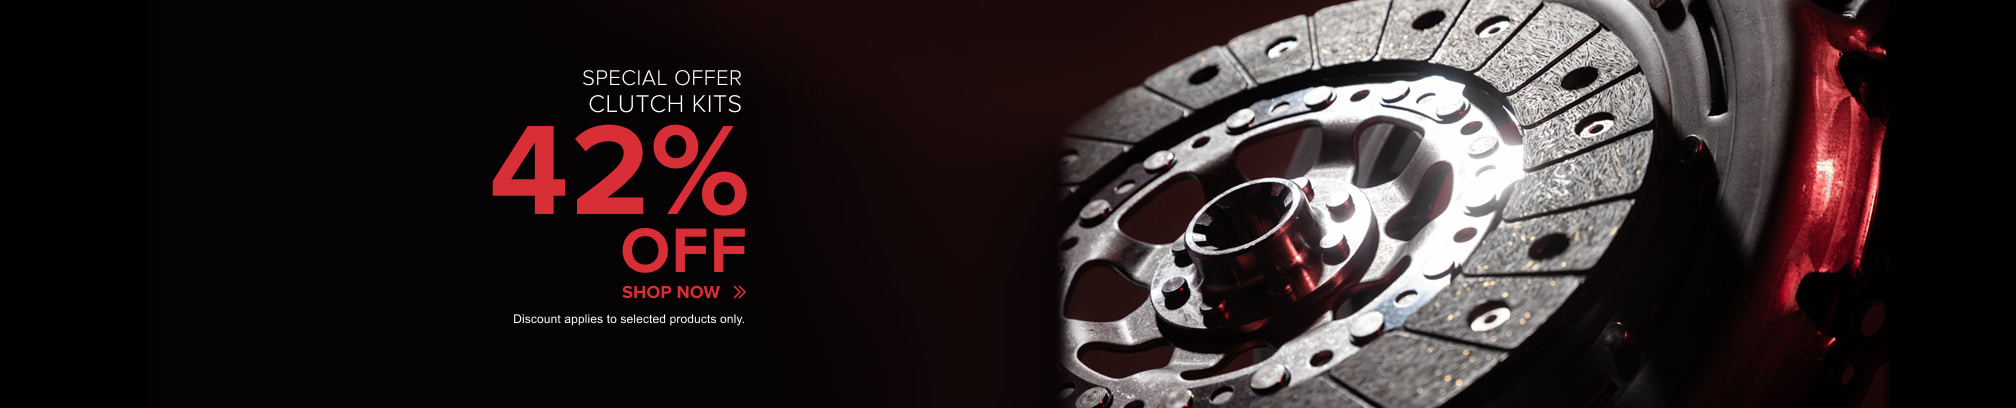 Special offer! clutch kits 42% off - Shop now